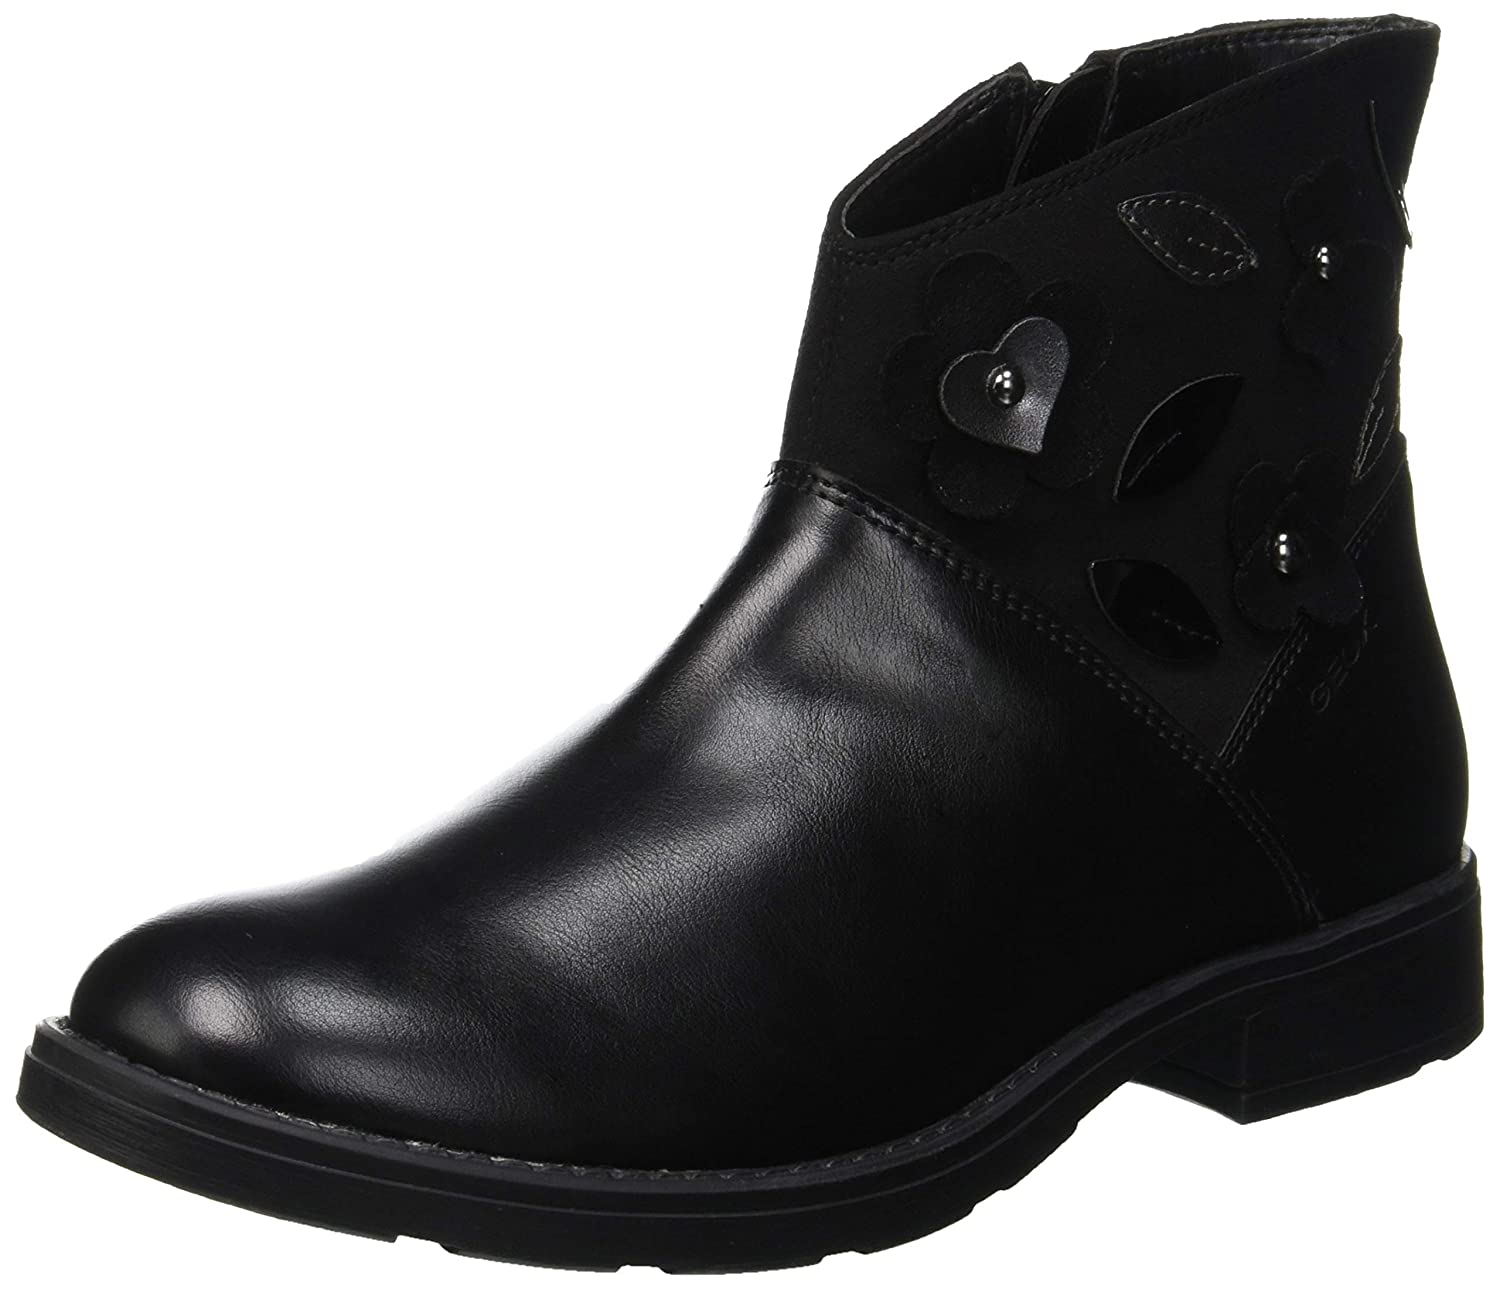 a86c93dafc307 Geox Girls'' Jr Sofia B Ankle Boots: Amazon.co.uk: Shoes & Bags